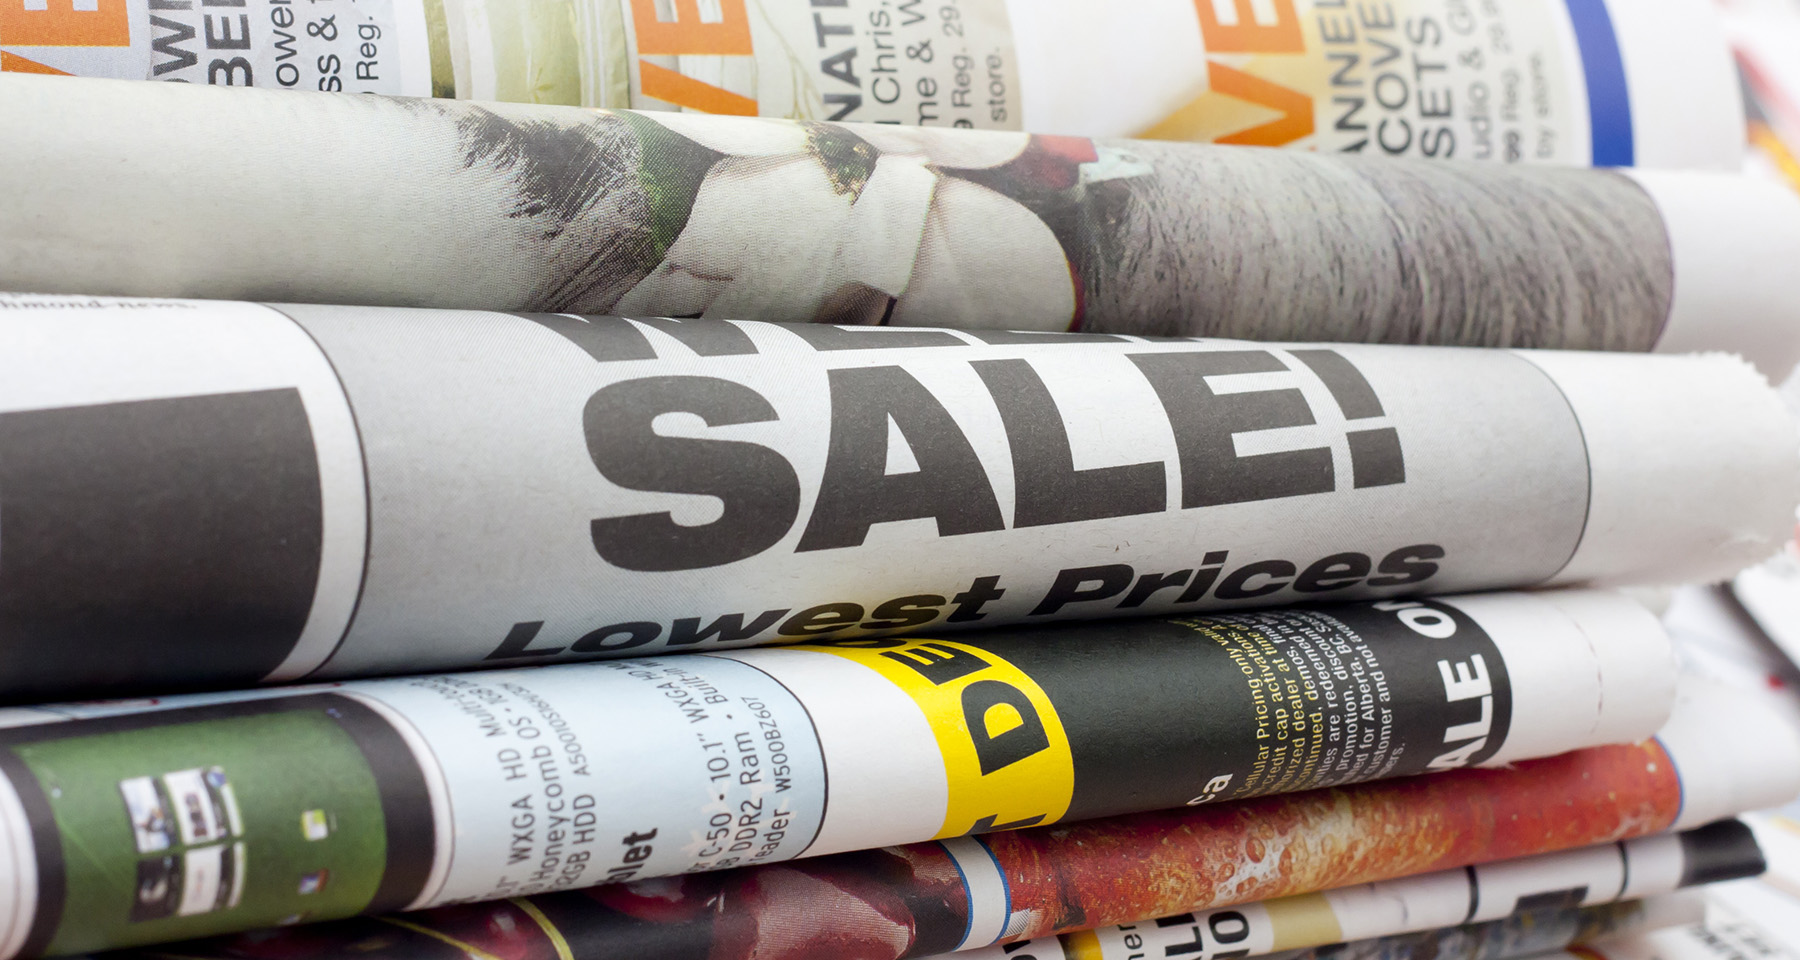 Research reinforces effectiveness of print advertising